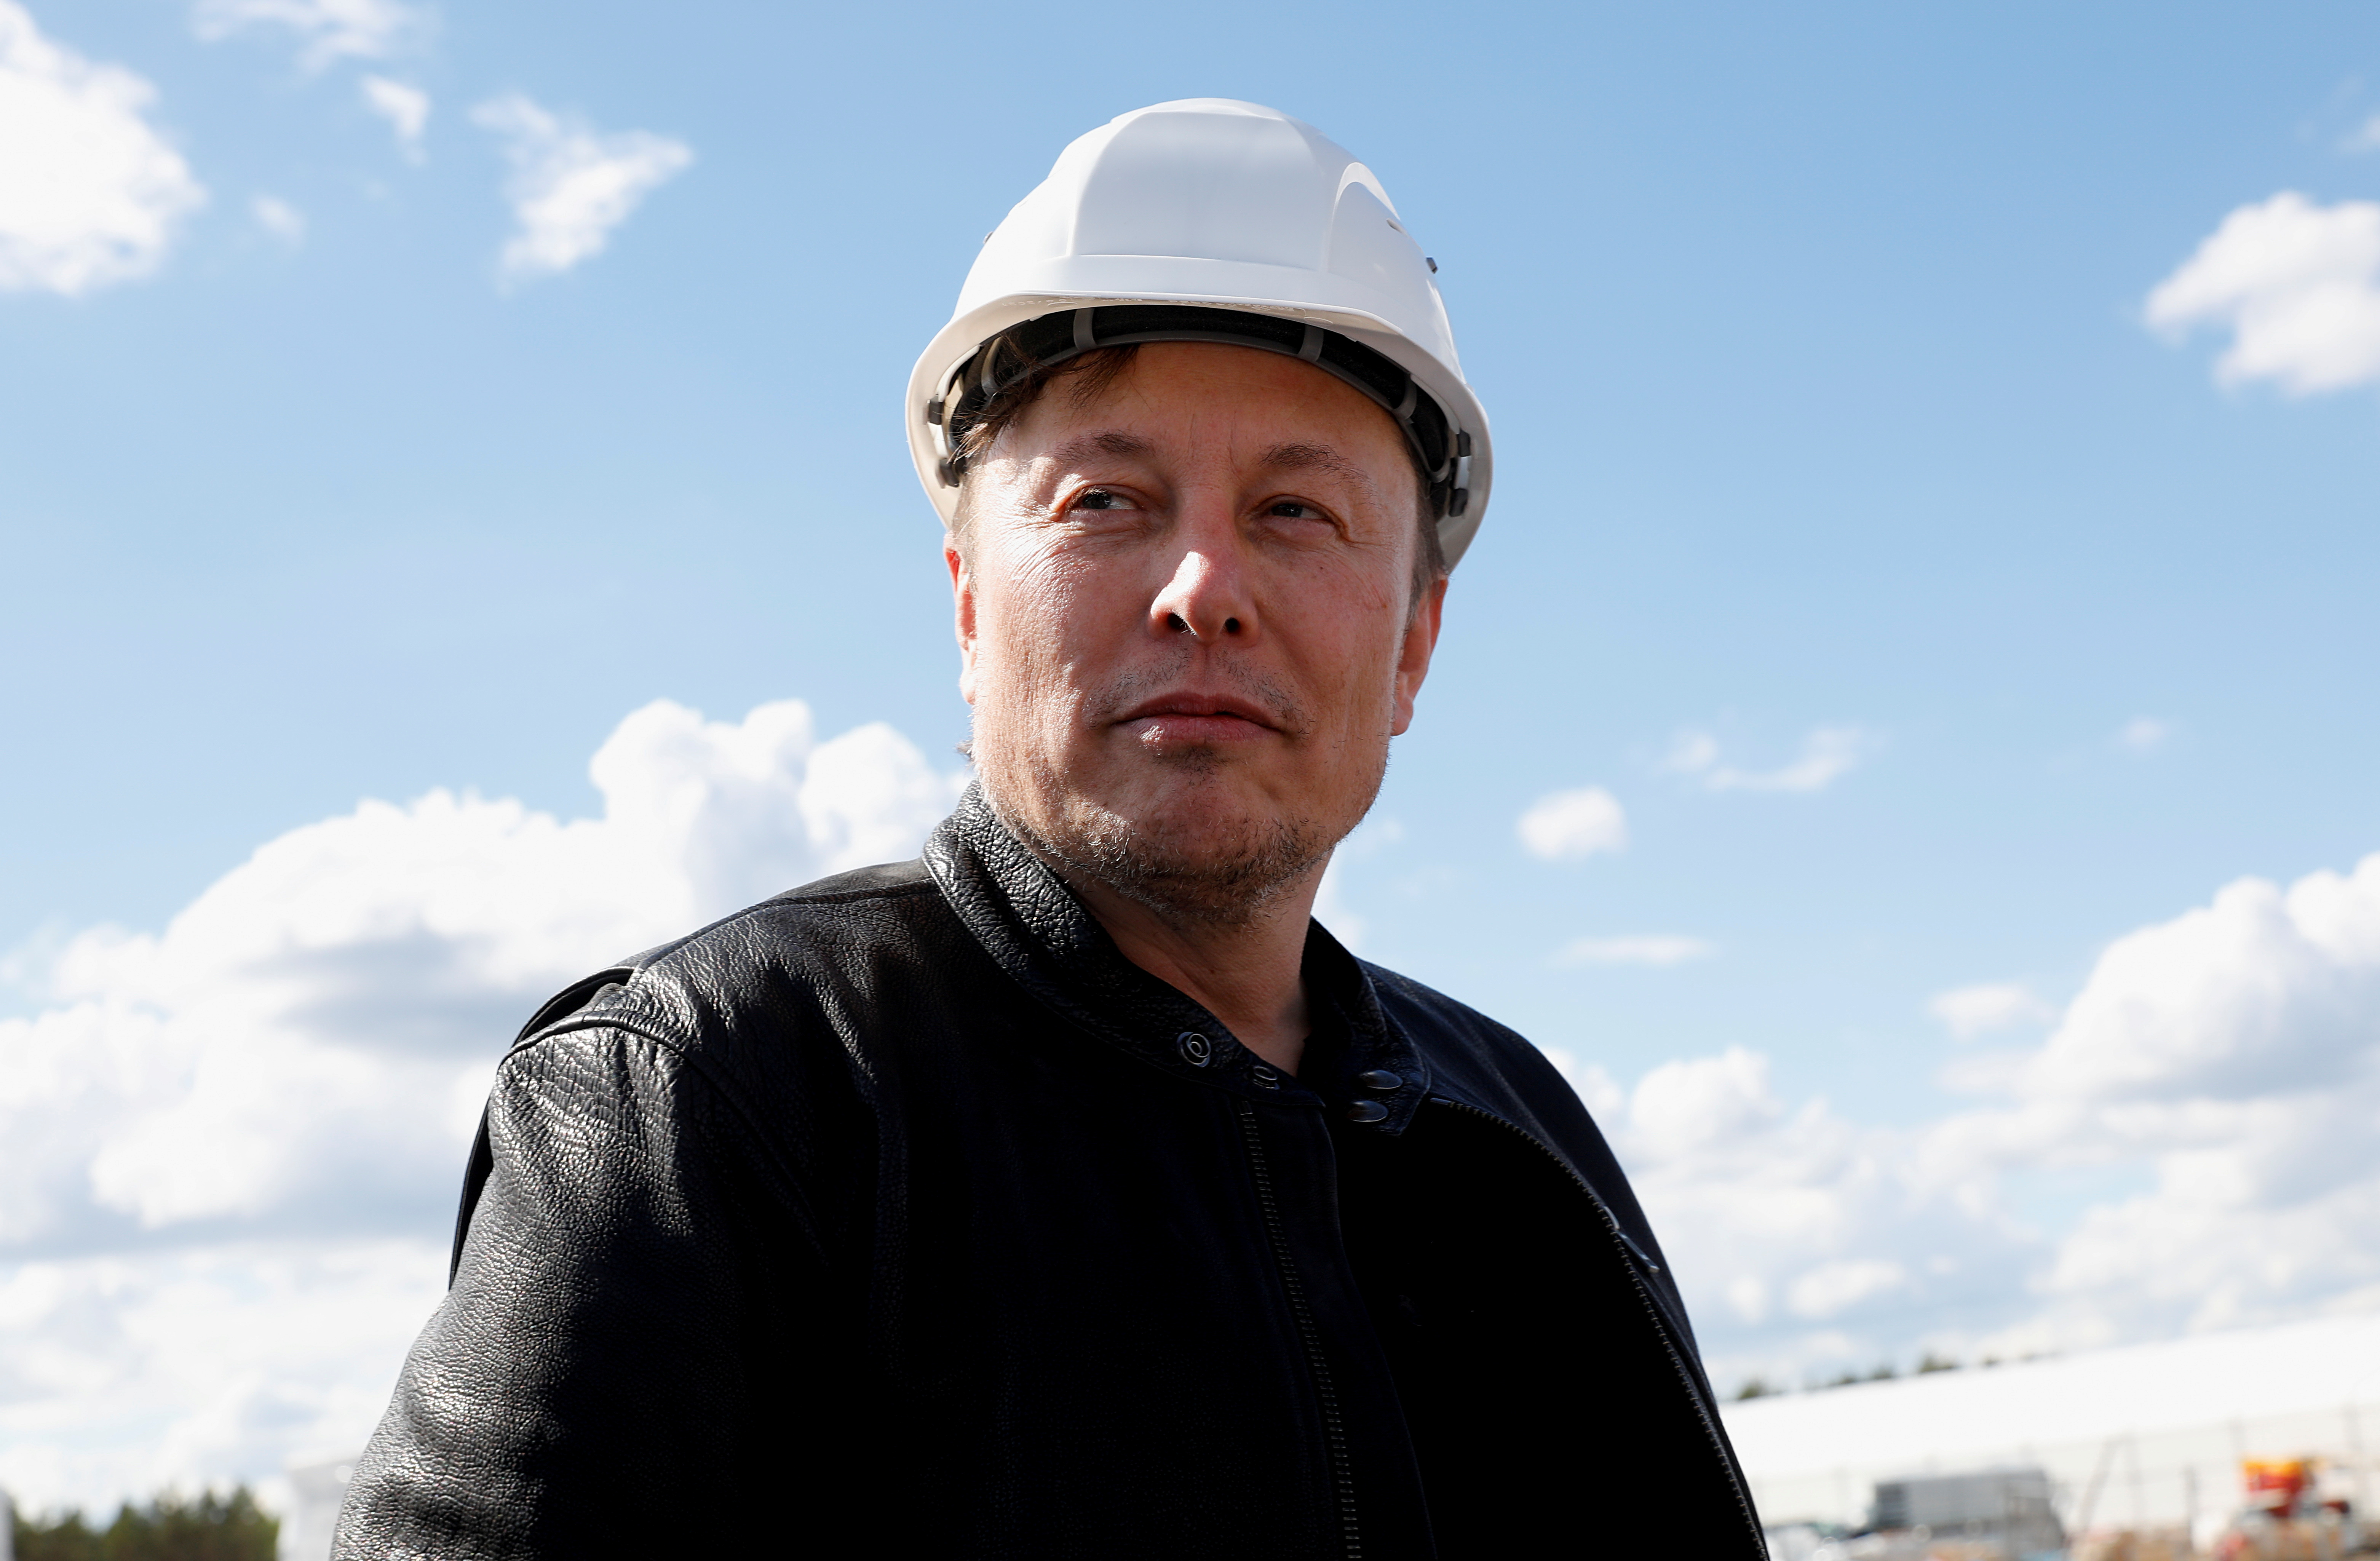 SpaceX founder and Tesla CEO Elon Musk visits the construction site of Tesla's gigafactory in Gruenheide, near Berlin, Germany, May 17, 2021. REUTERS/Michele Tantussi/File Photo